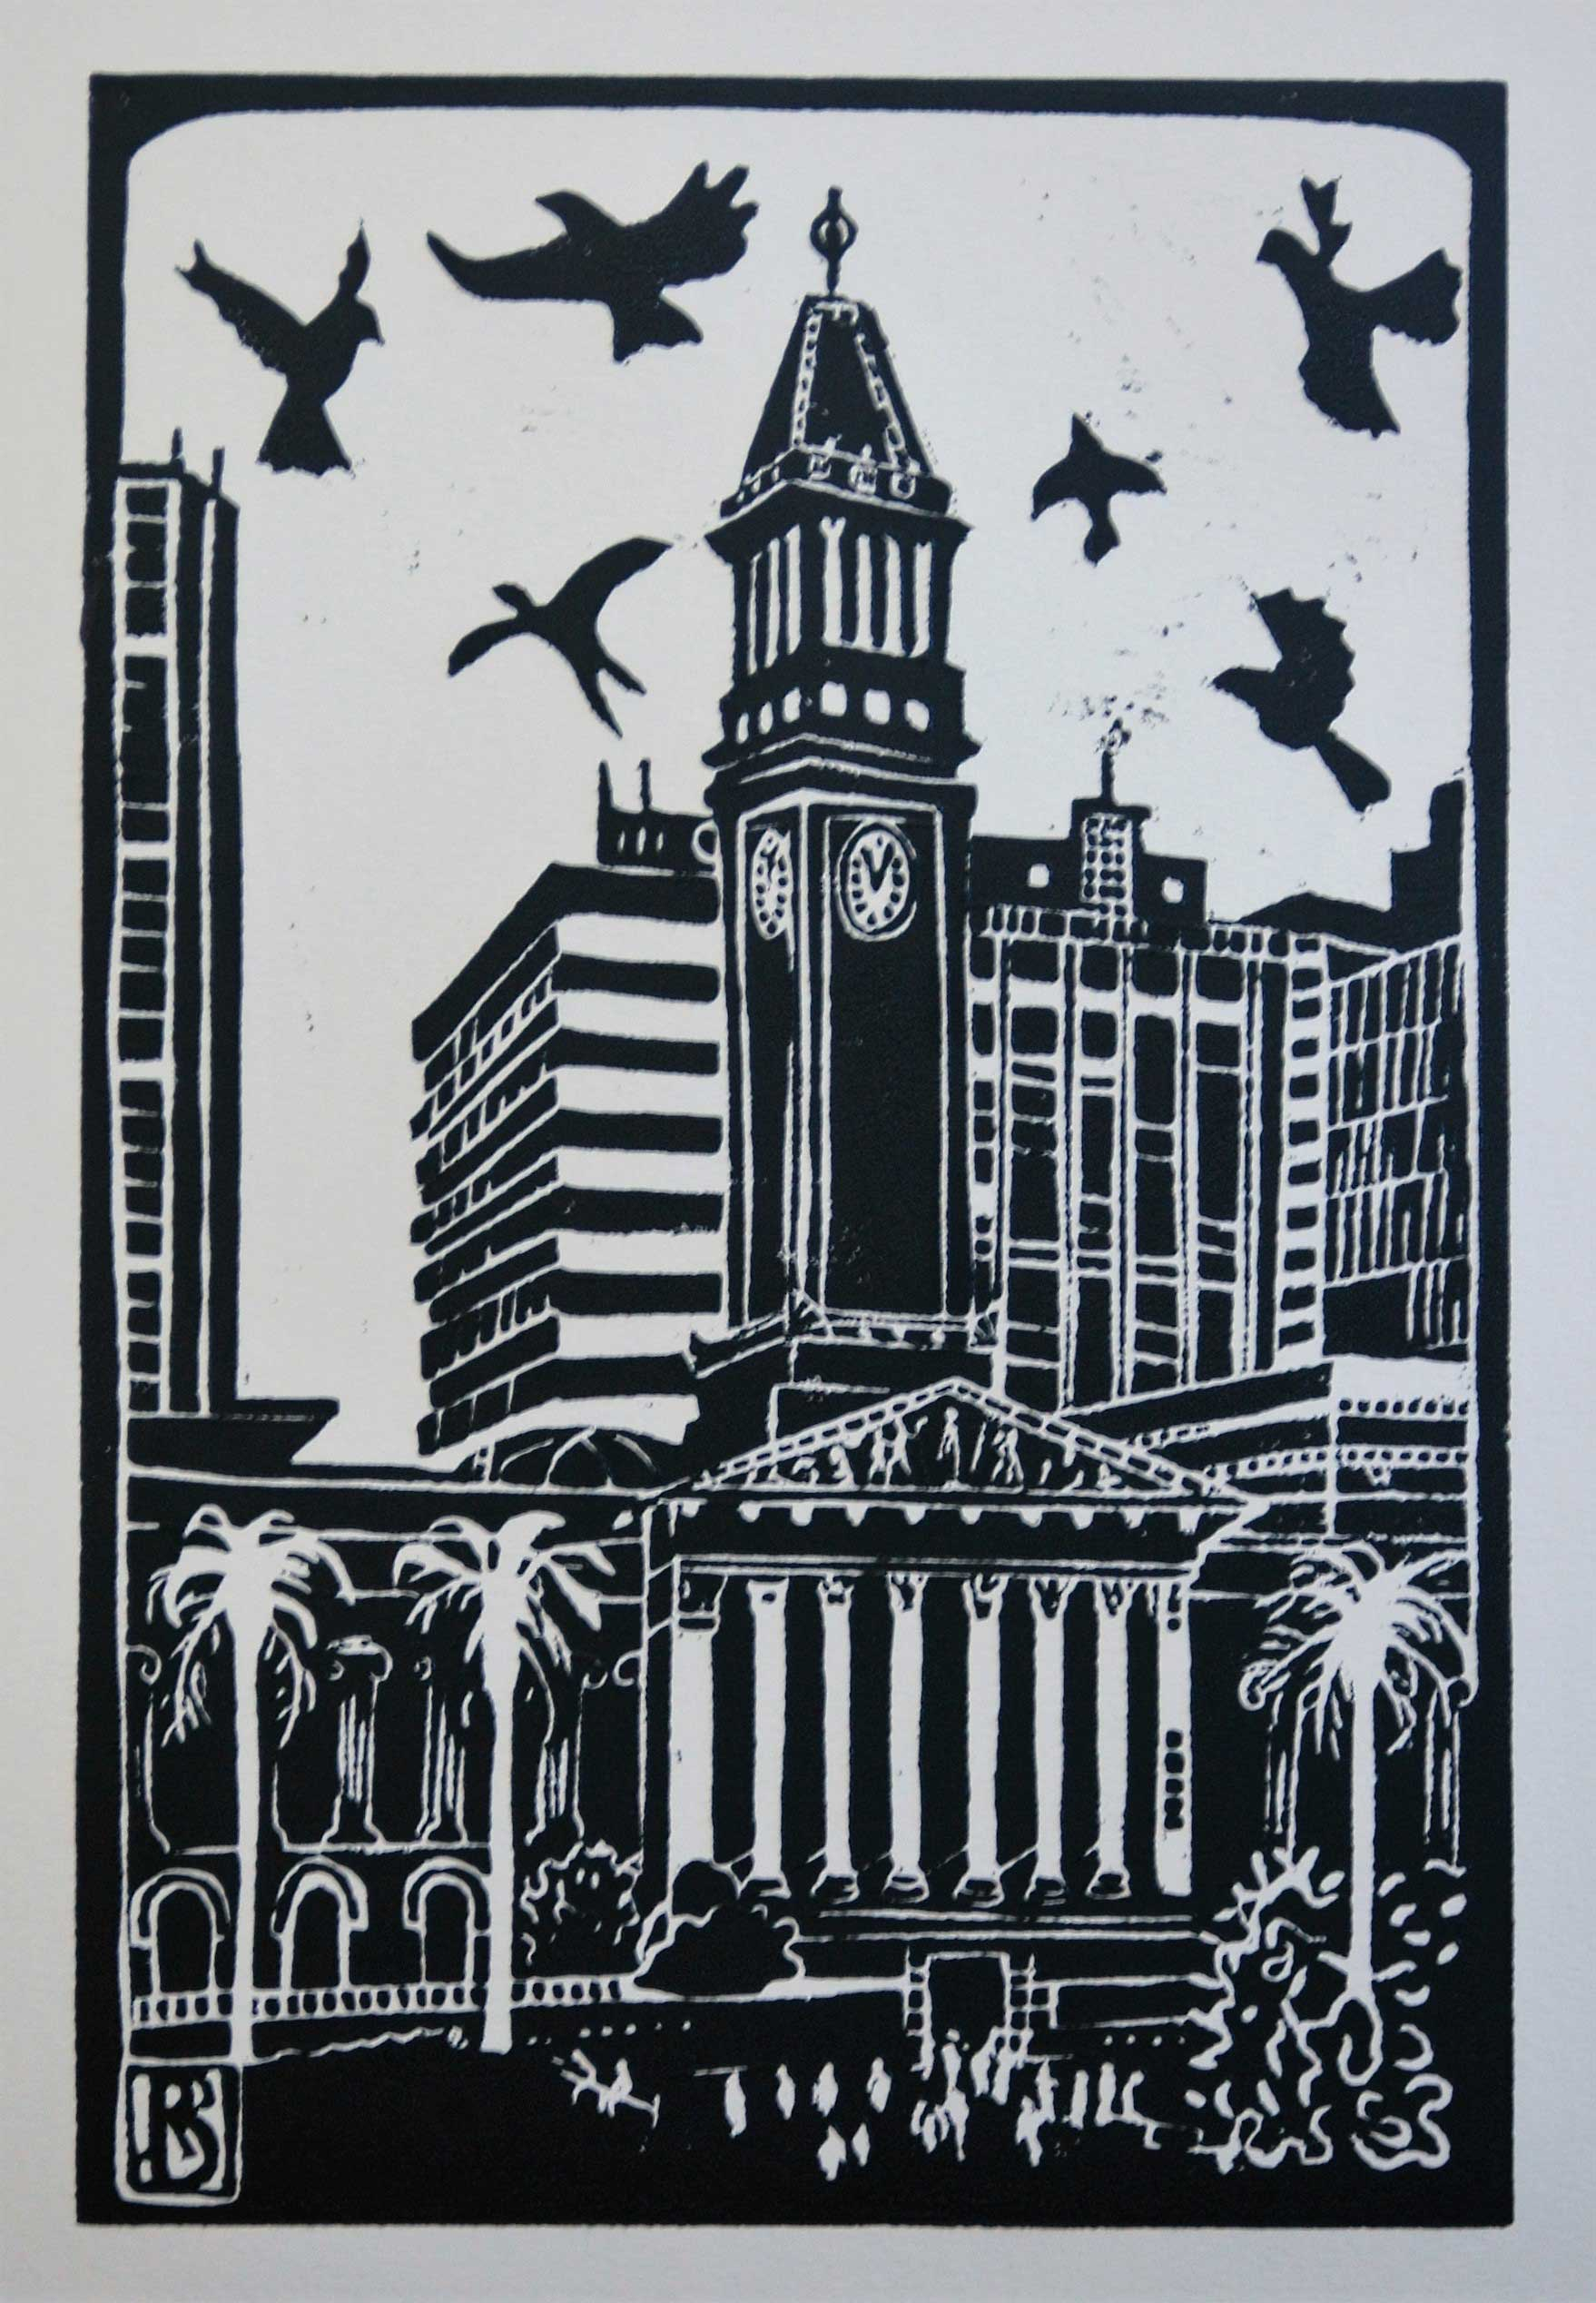 Birds dancing over City Hall